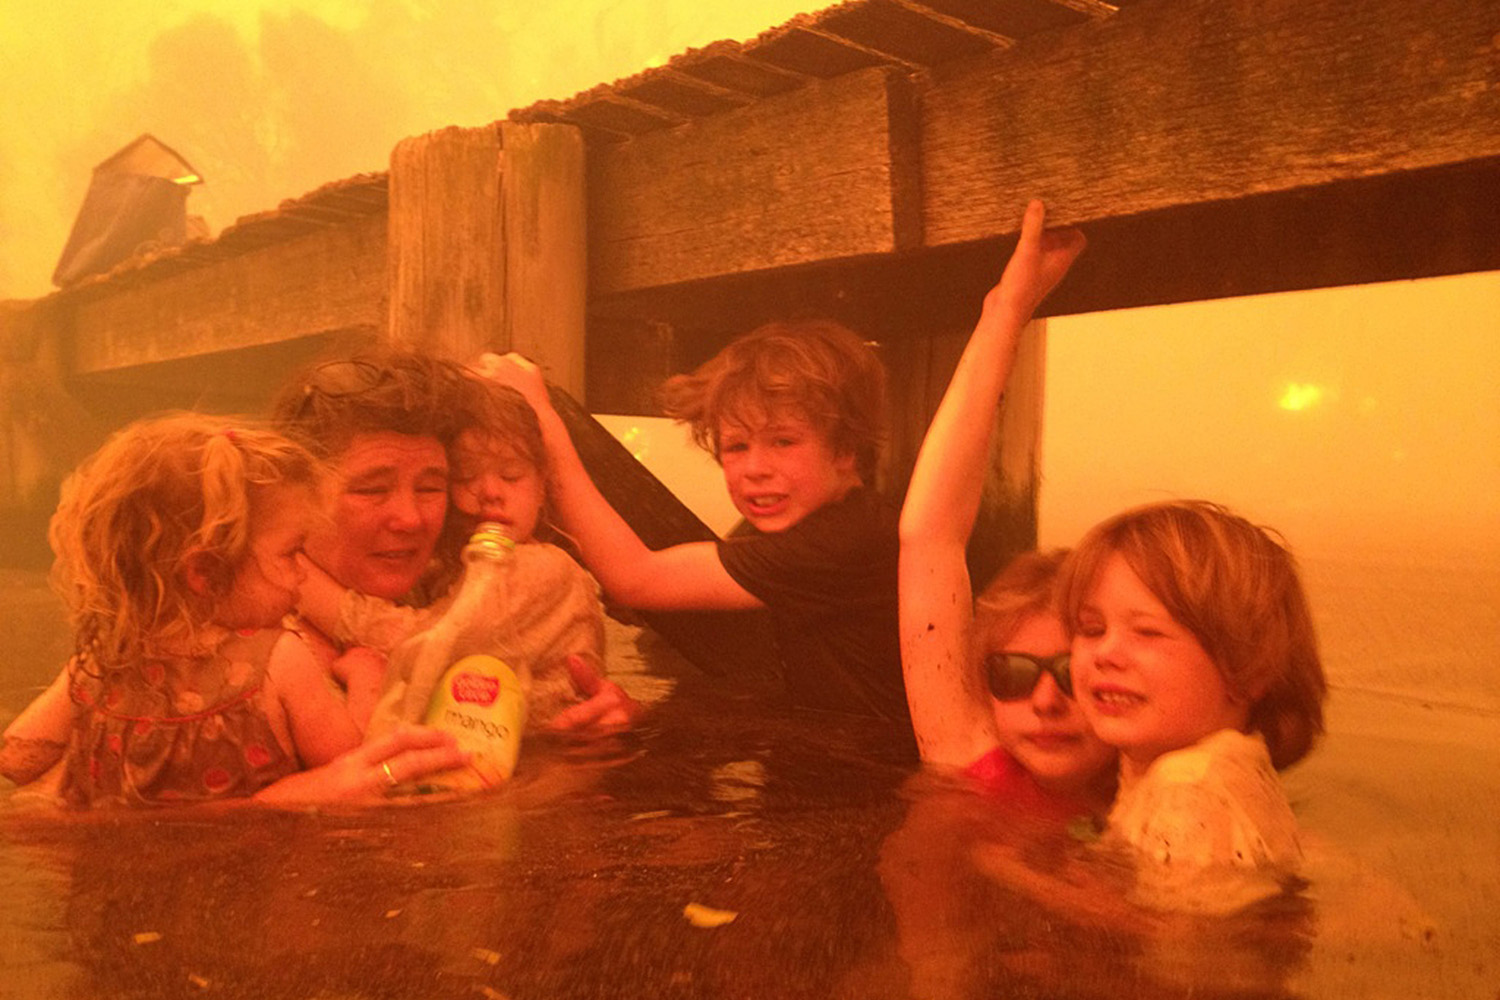 Jan. 4, 2013. Tammy Holmes, second from left, and her grandchildren, two-year-old Charlotte Walker, left, four-year-old Esther Walker, third from left, nine-year-old Liam Walker, eleven-year-old Matilda, second from right, and six-year-old Caleb Walker, right, take refuge under a jetty as a wildfire rages near-by in the Tasmanian town of Dunalley, east of the state capital of Hobart, Australia.